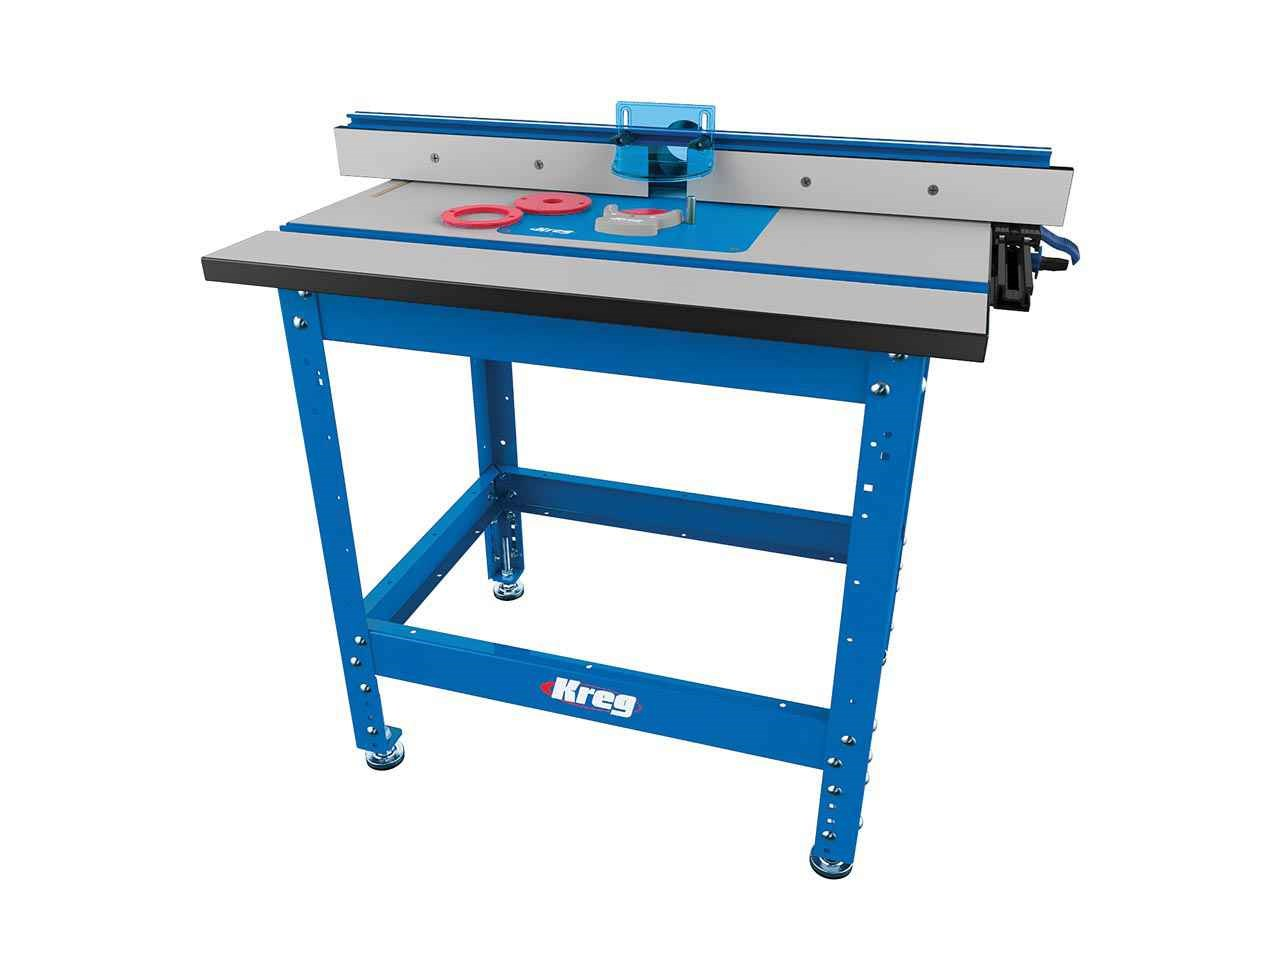 Kreg 833674 precision router table system prs1045 greentooth Choice Image